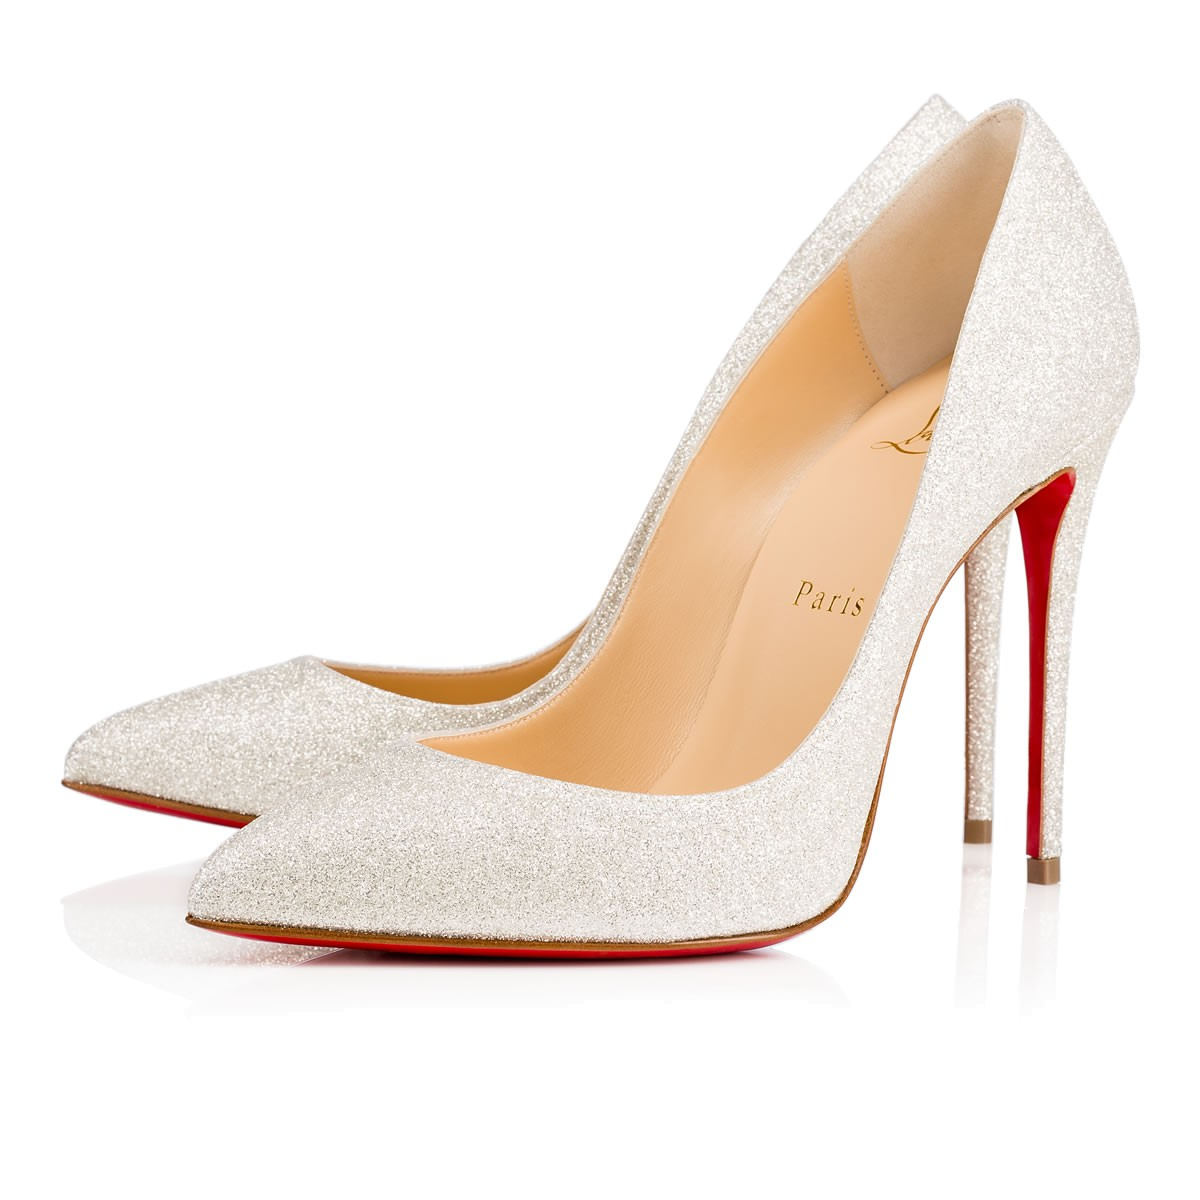 huge inventory 9a7aa 15b89 Pigalle Follies 100 Ivory Glitter Mini - Women Shoes - Christian Louboutin